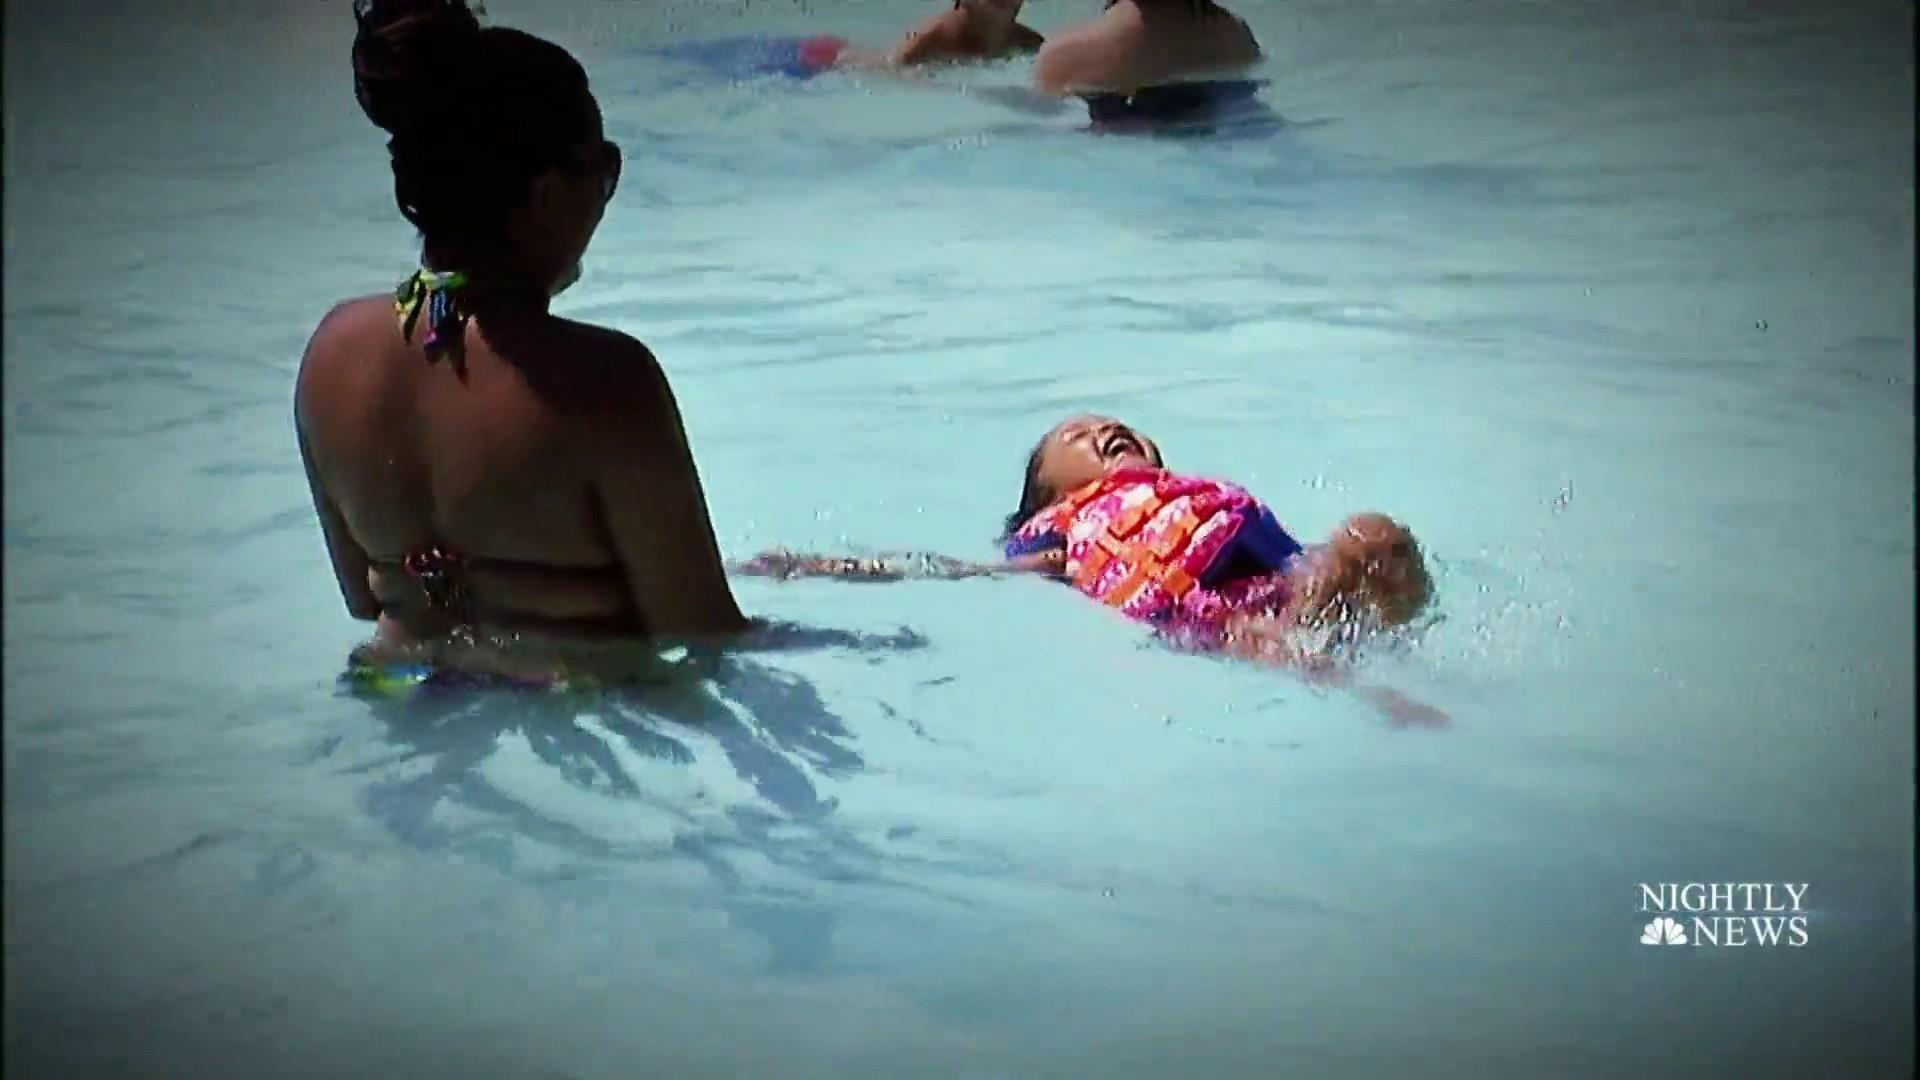 Cold water shock drowning and how to prevent it